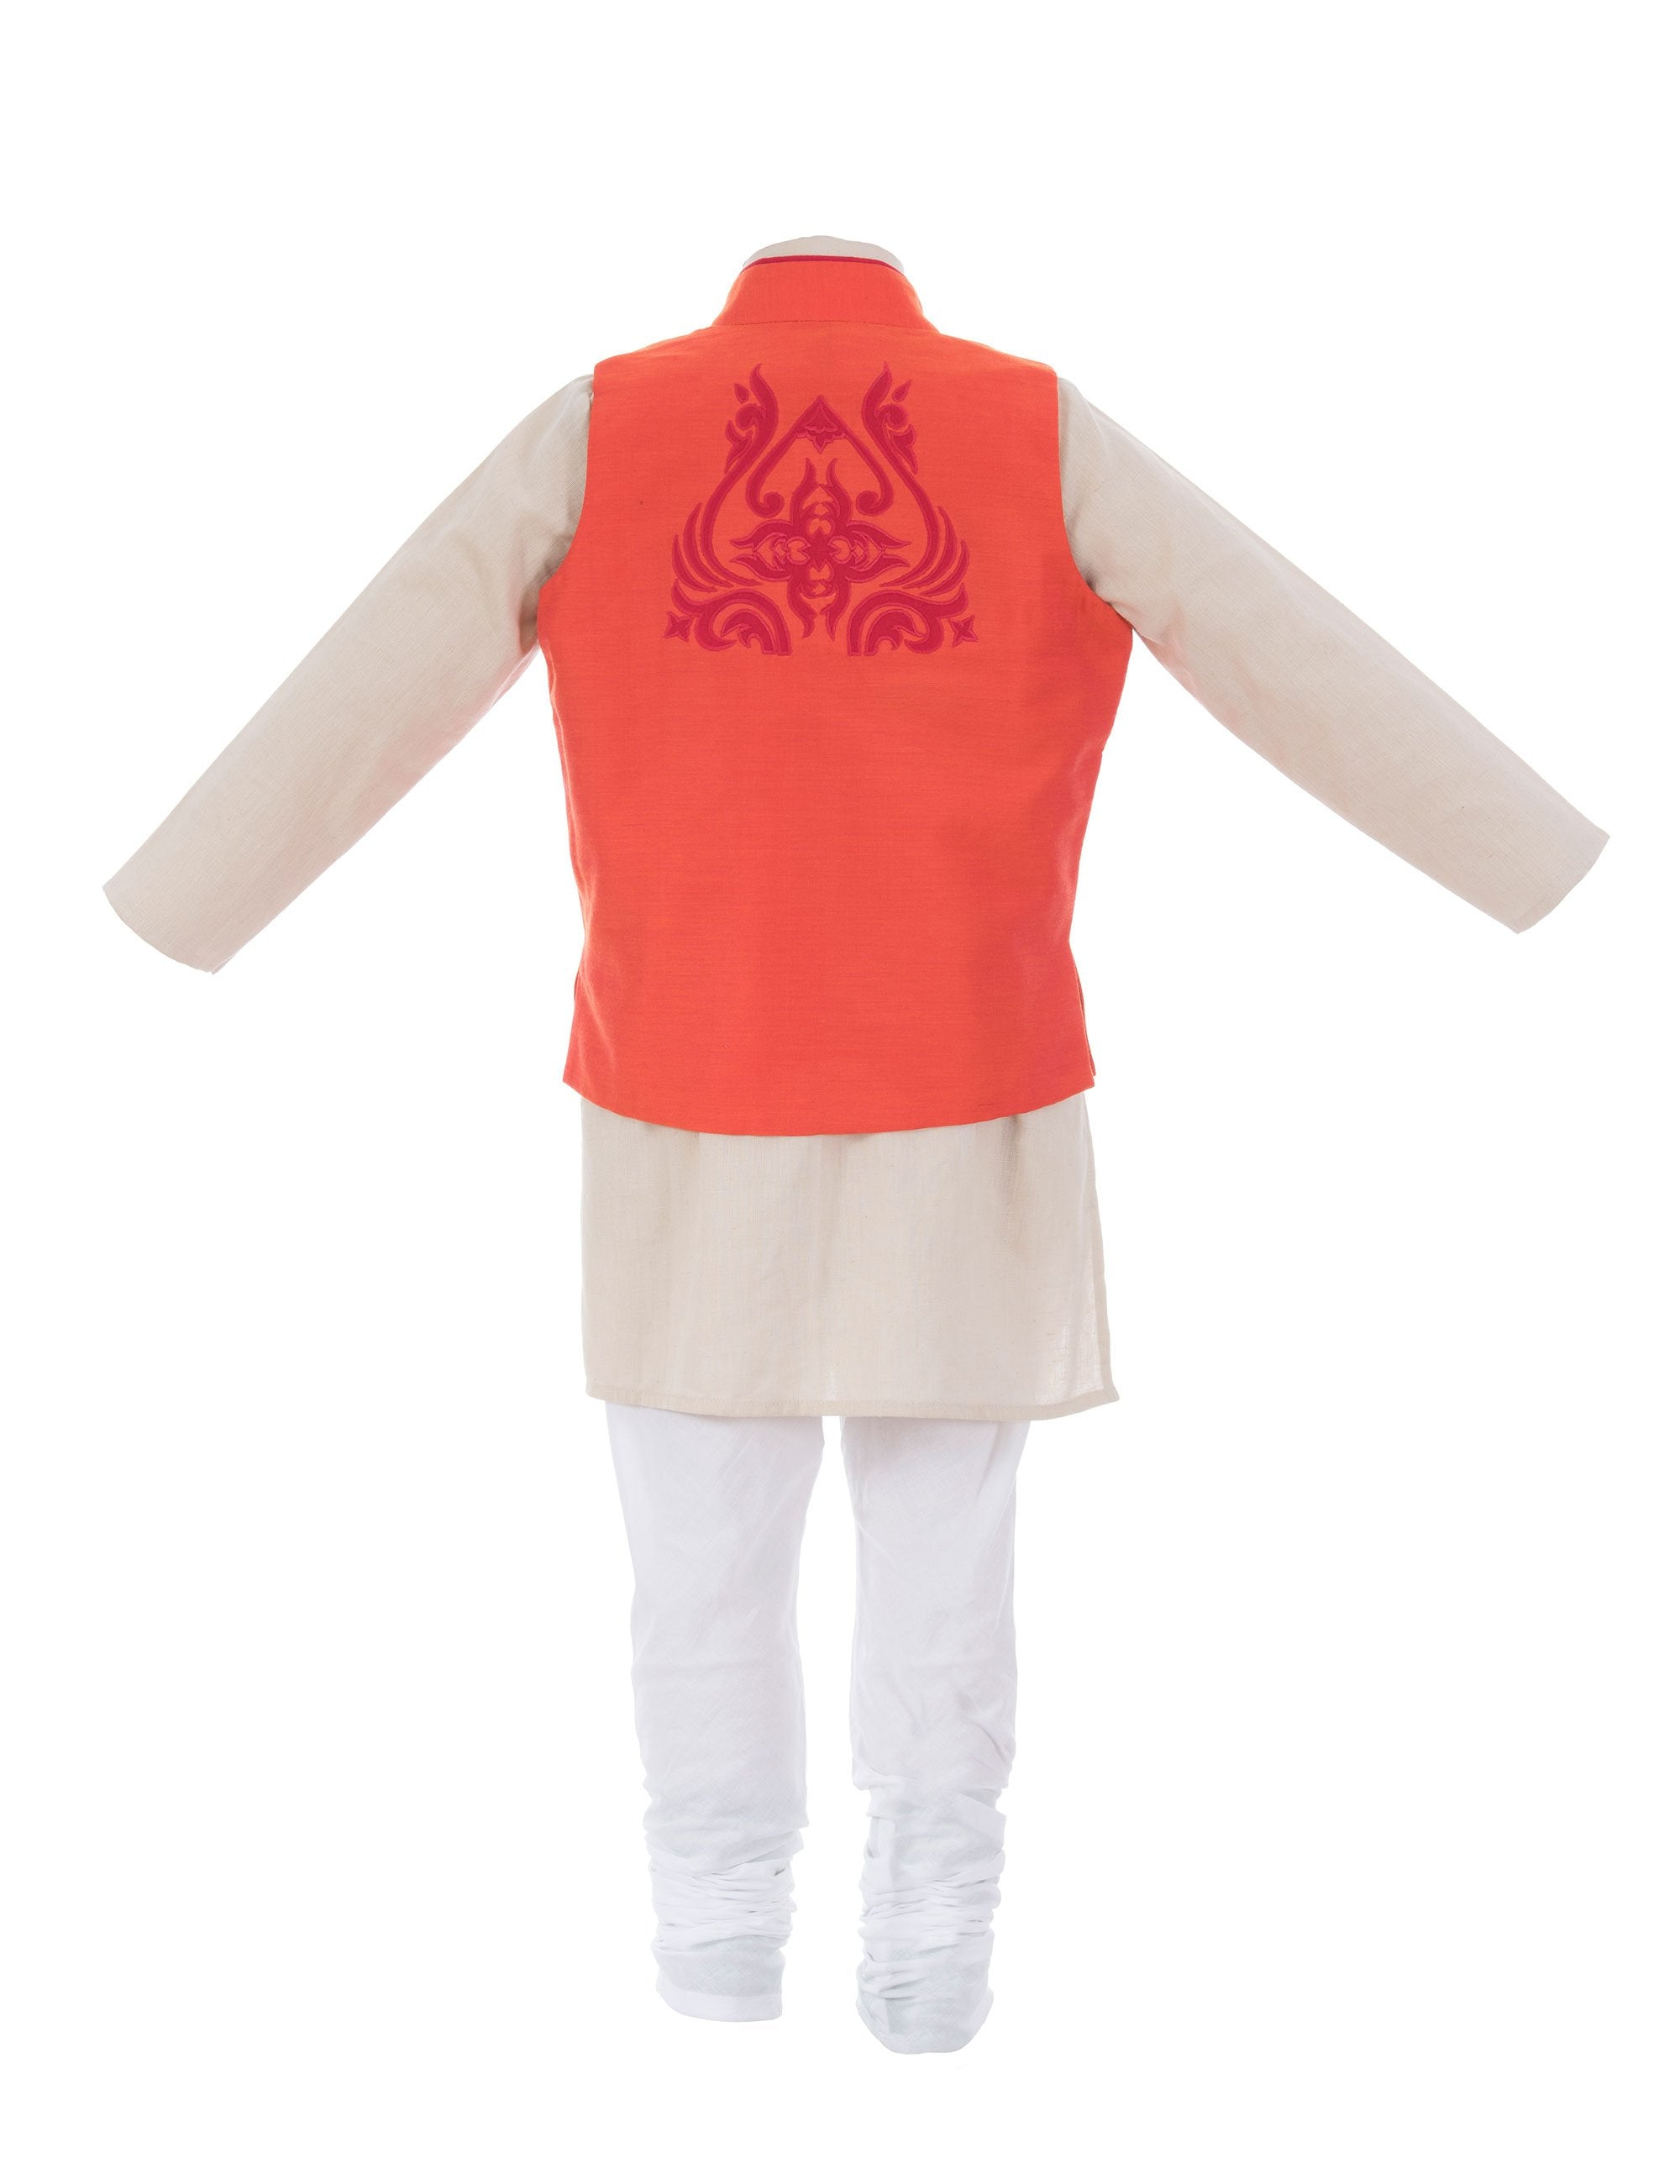 Applique Kurta Jacket in Red Colour for Boys